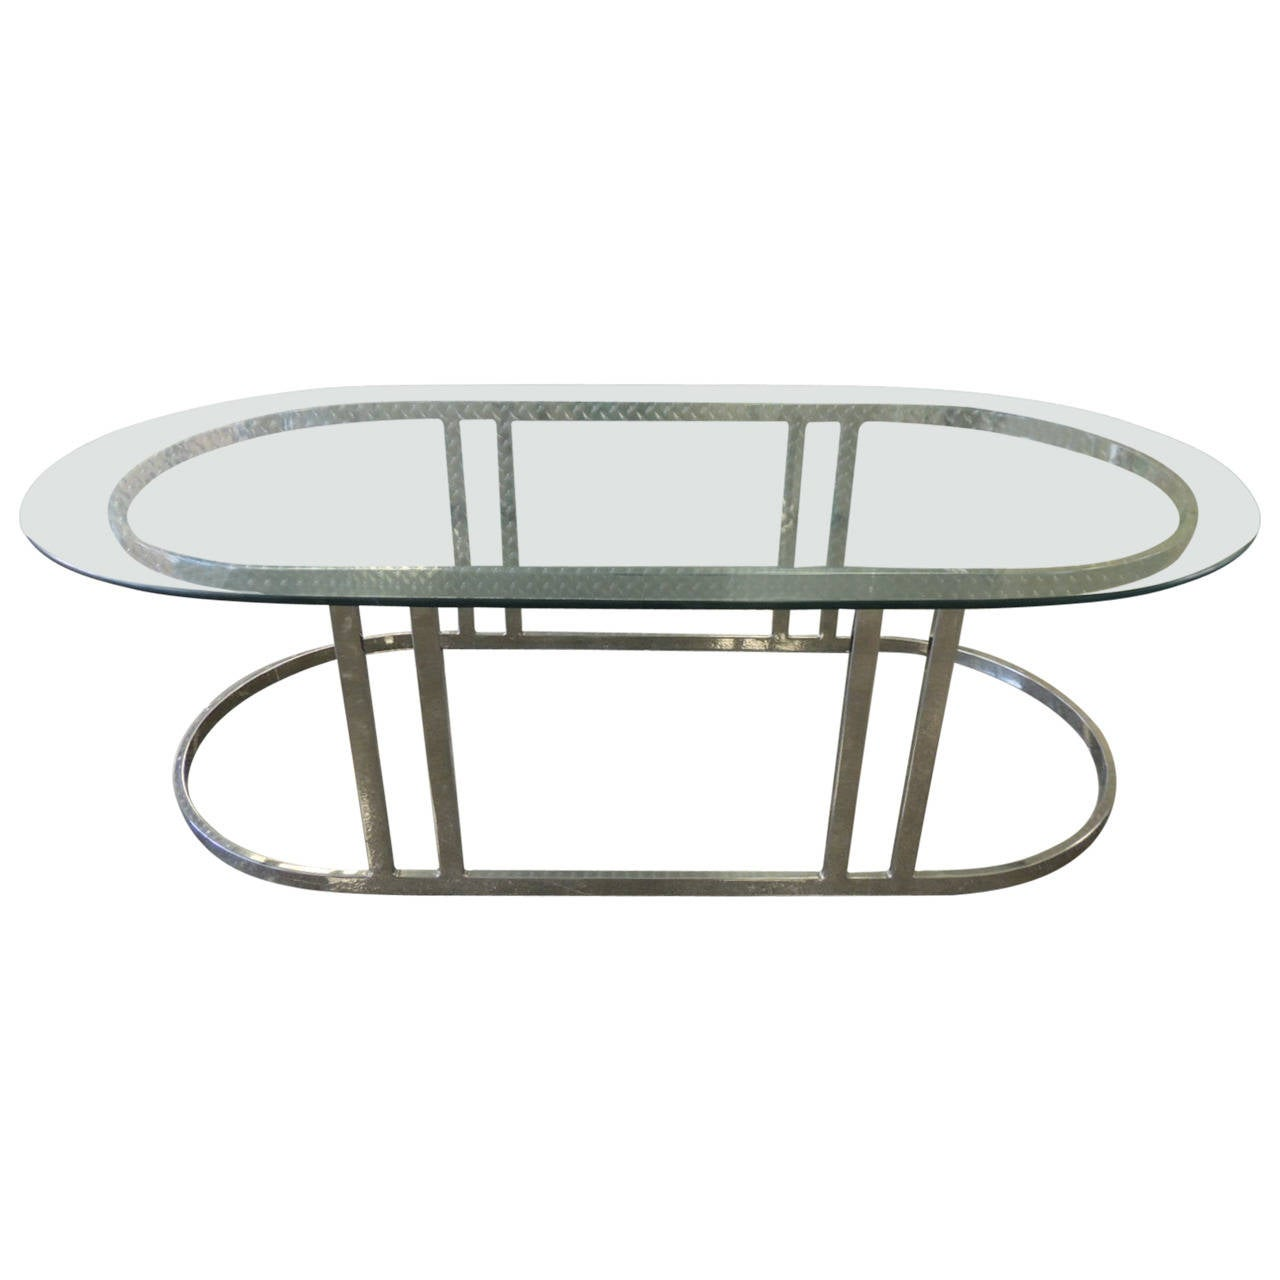 Mid Century Modern Polished Chrome Oval Coffee Table At 1stdibs